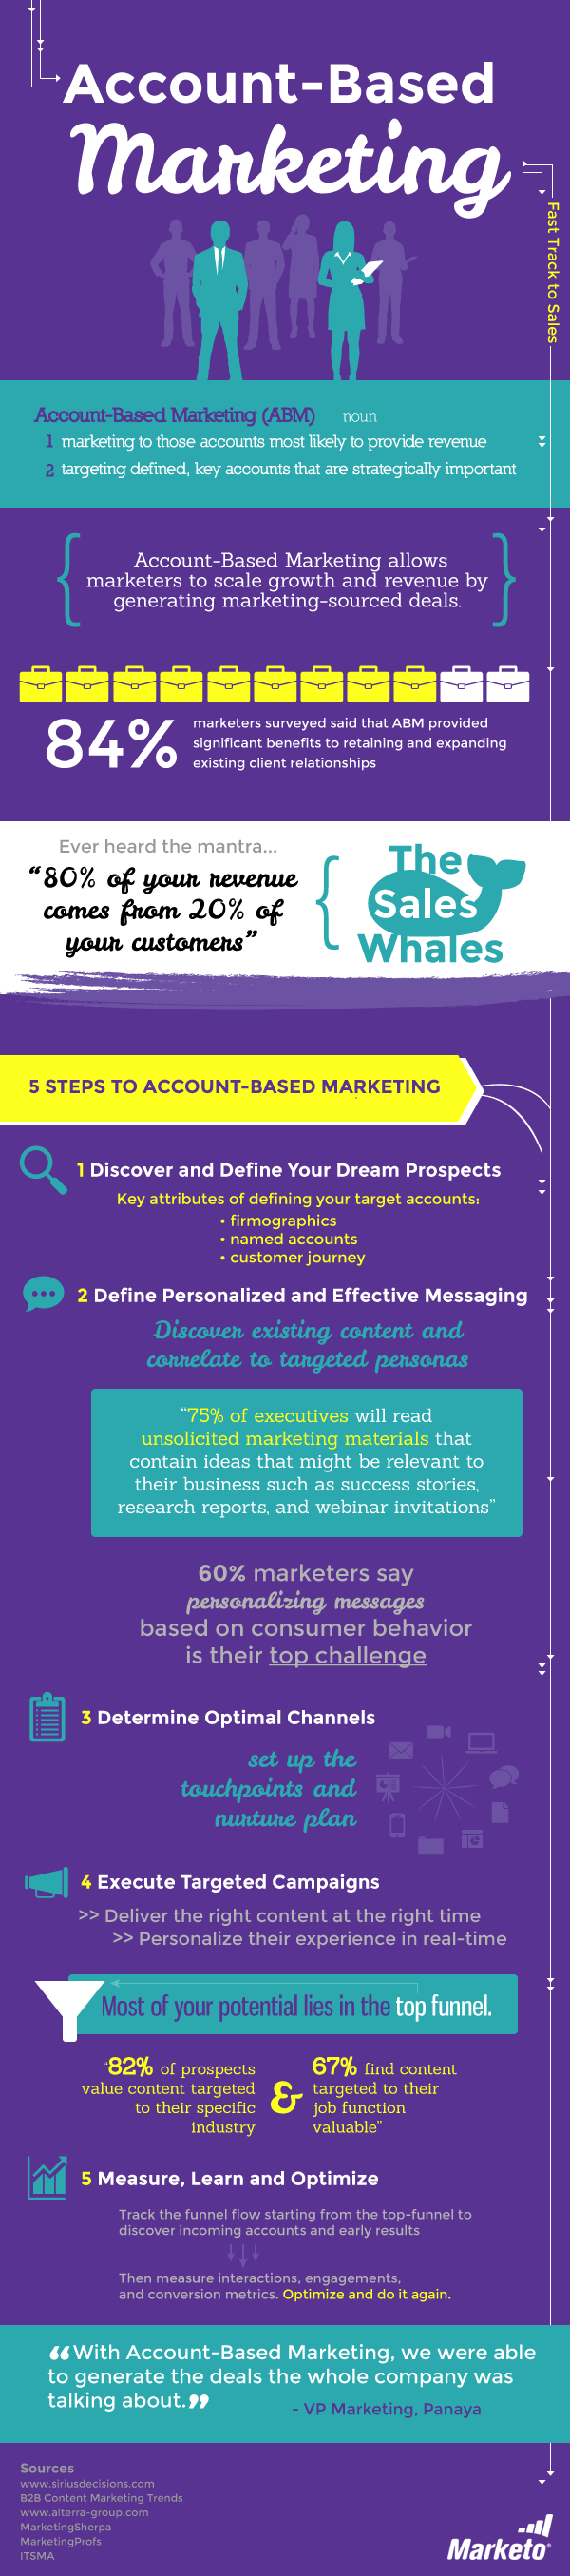 account-based-marketing-infographic